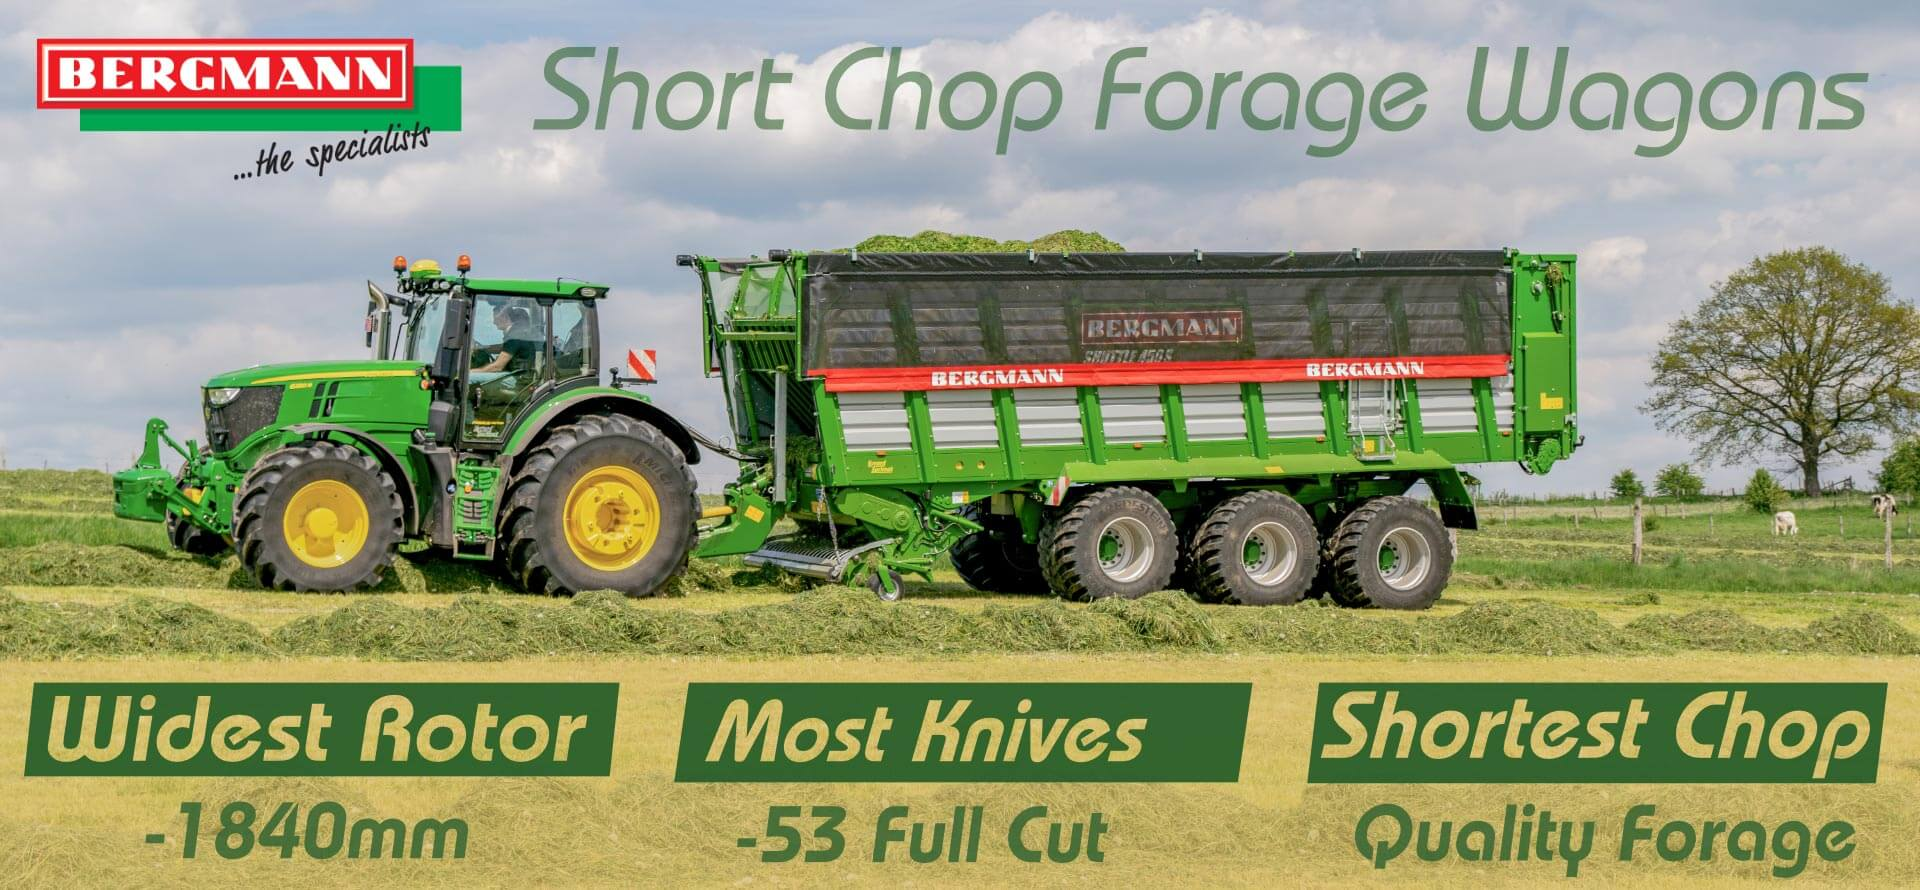 Short chop forage wagons producing quality silage